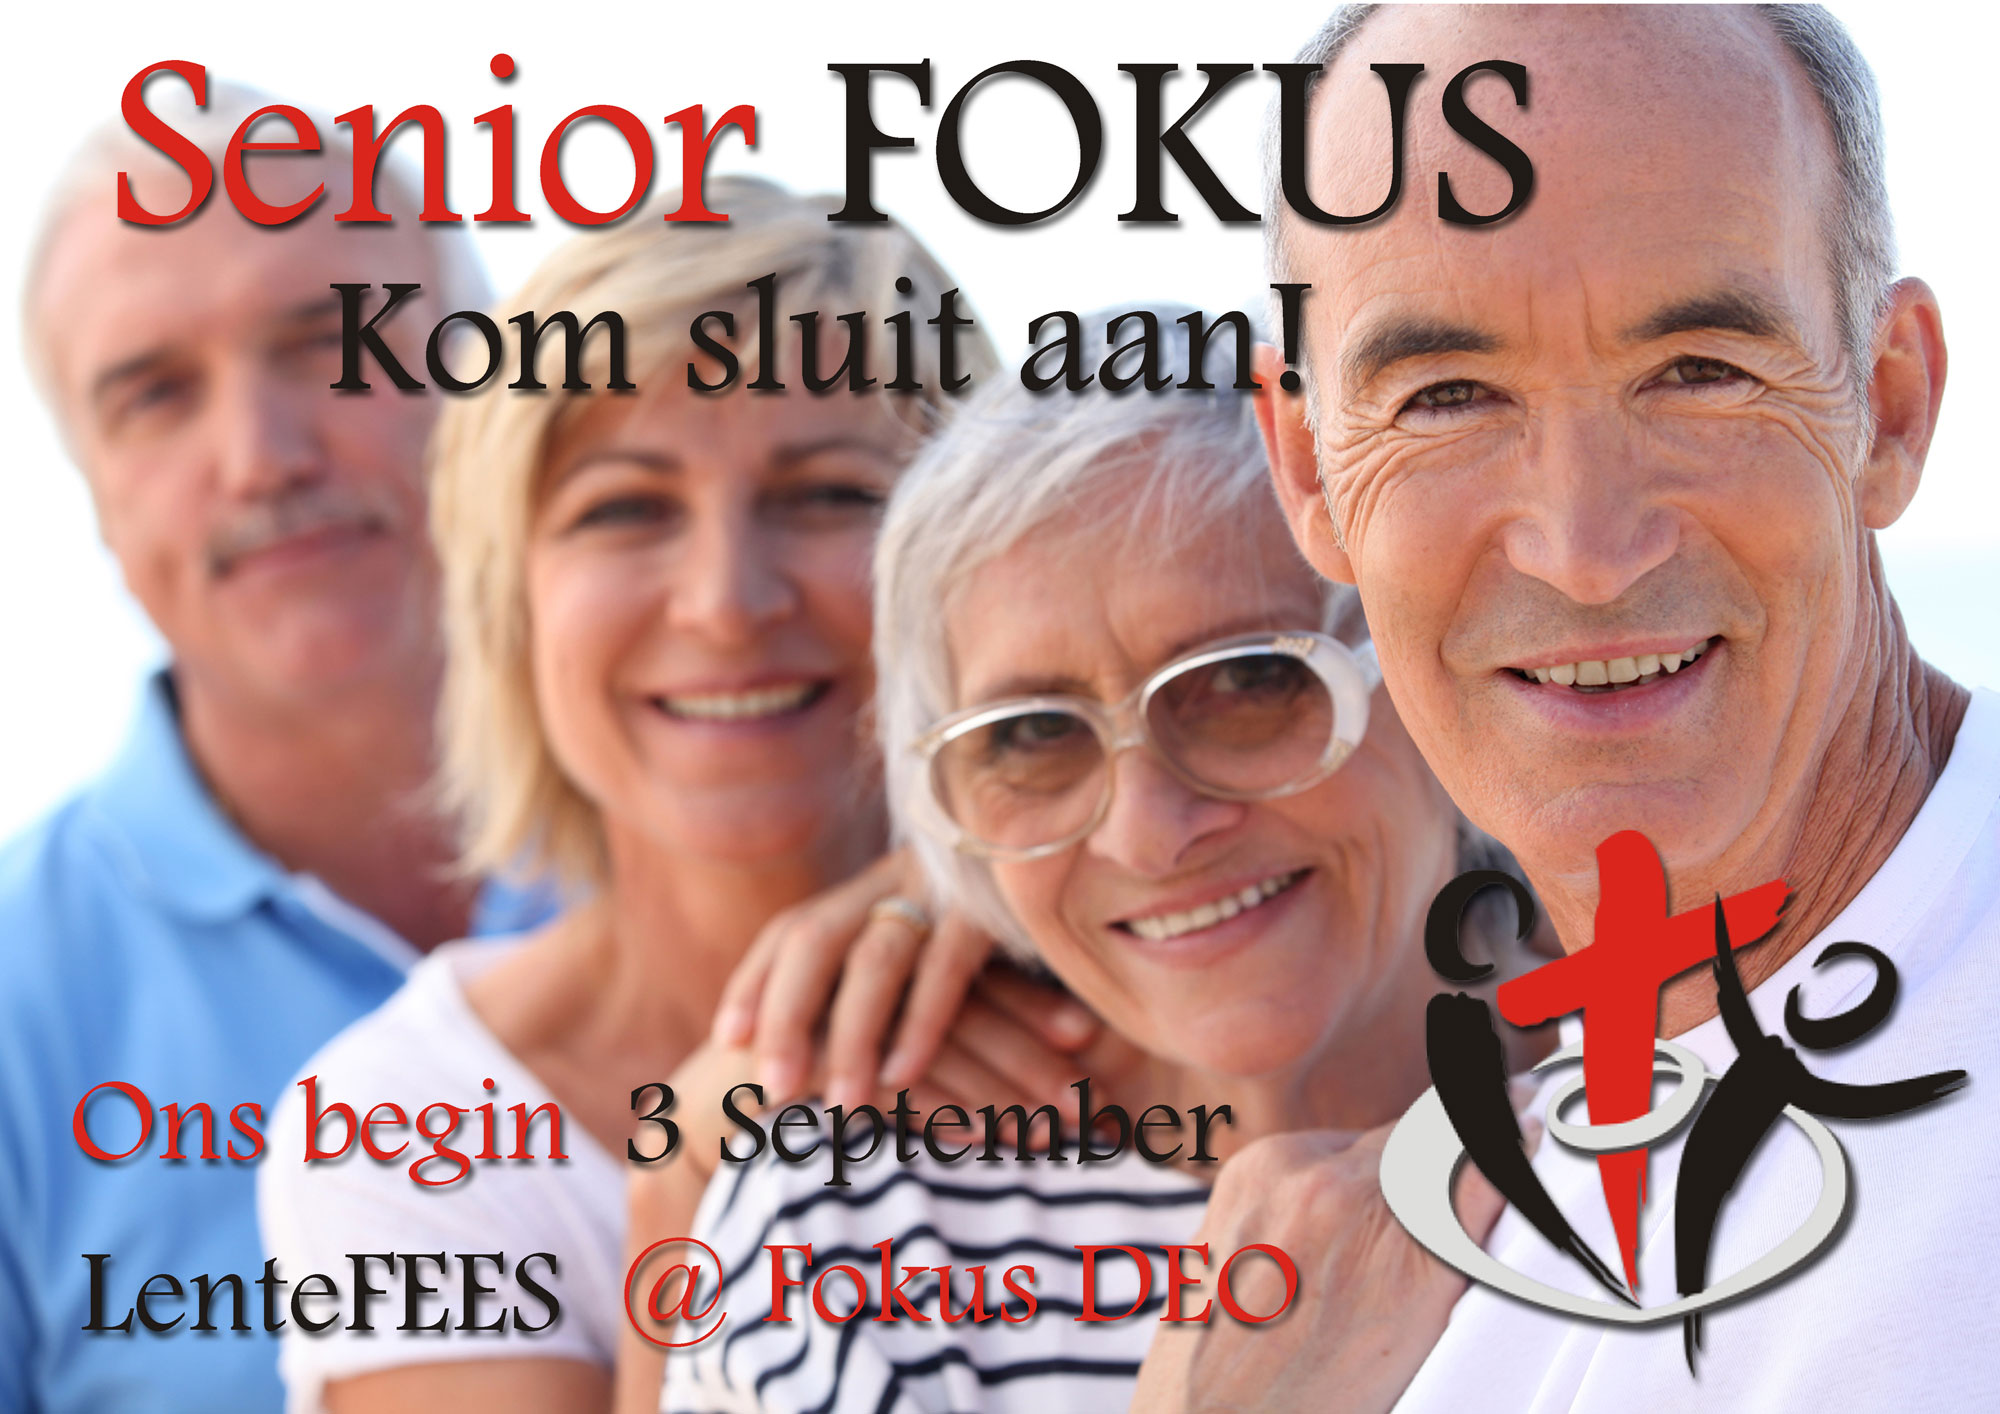 Senior-FOKUS begin Saterdag 3 September met 'n Lentefees.